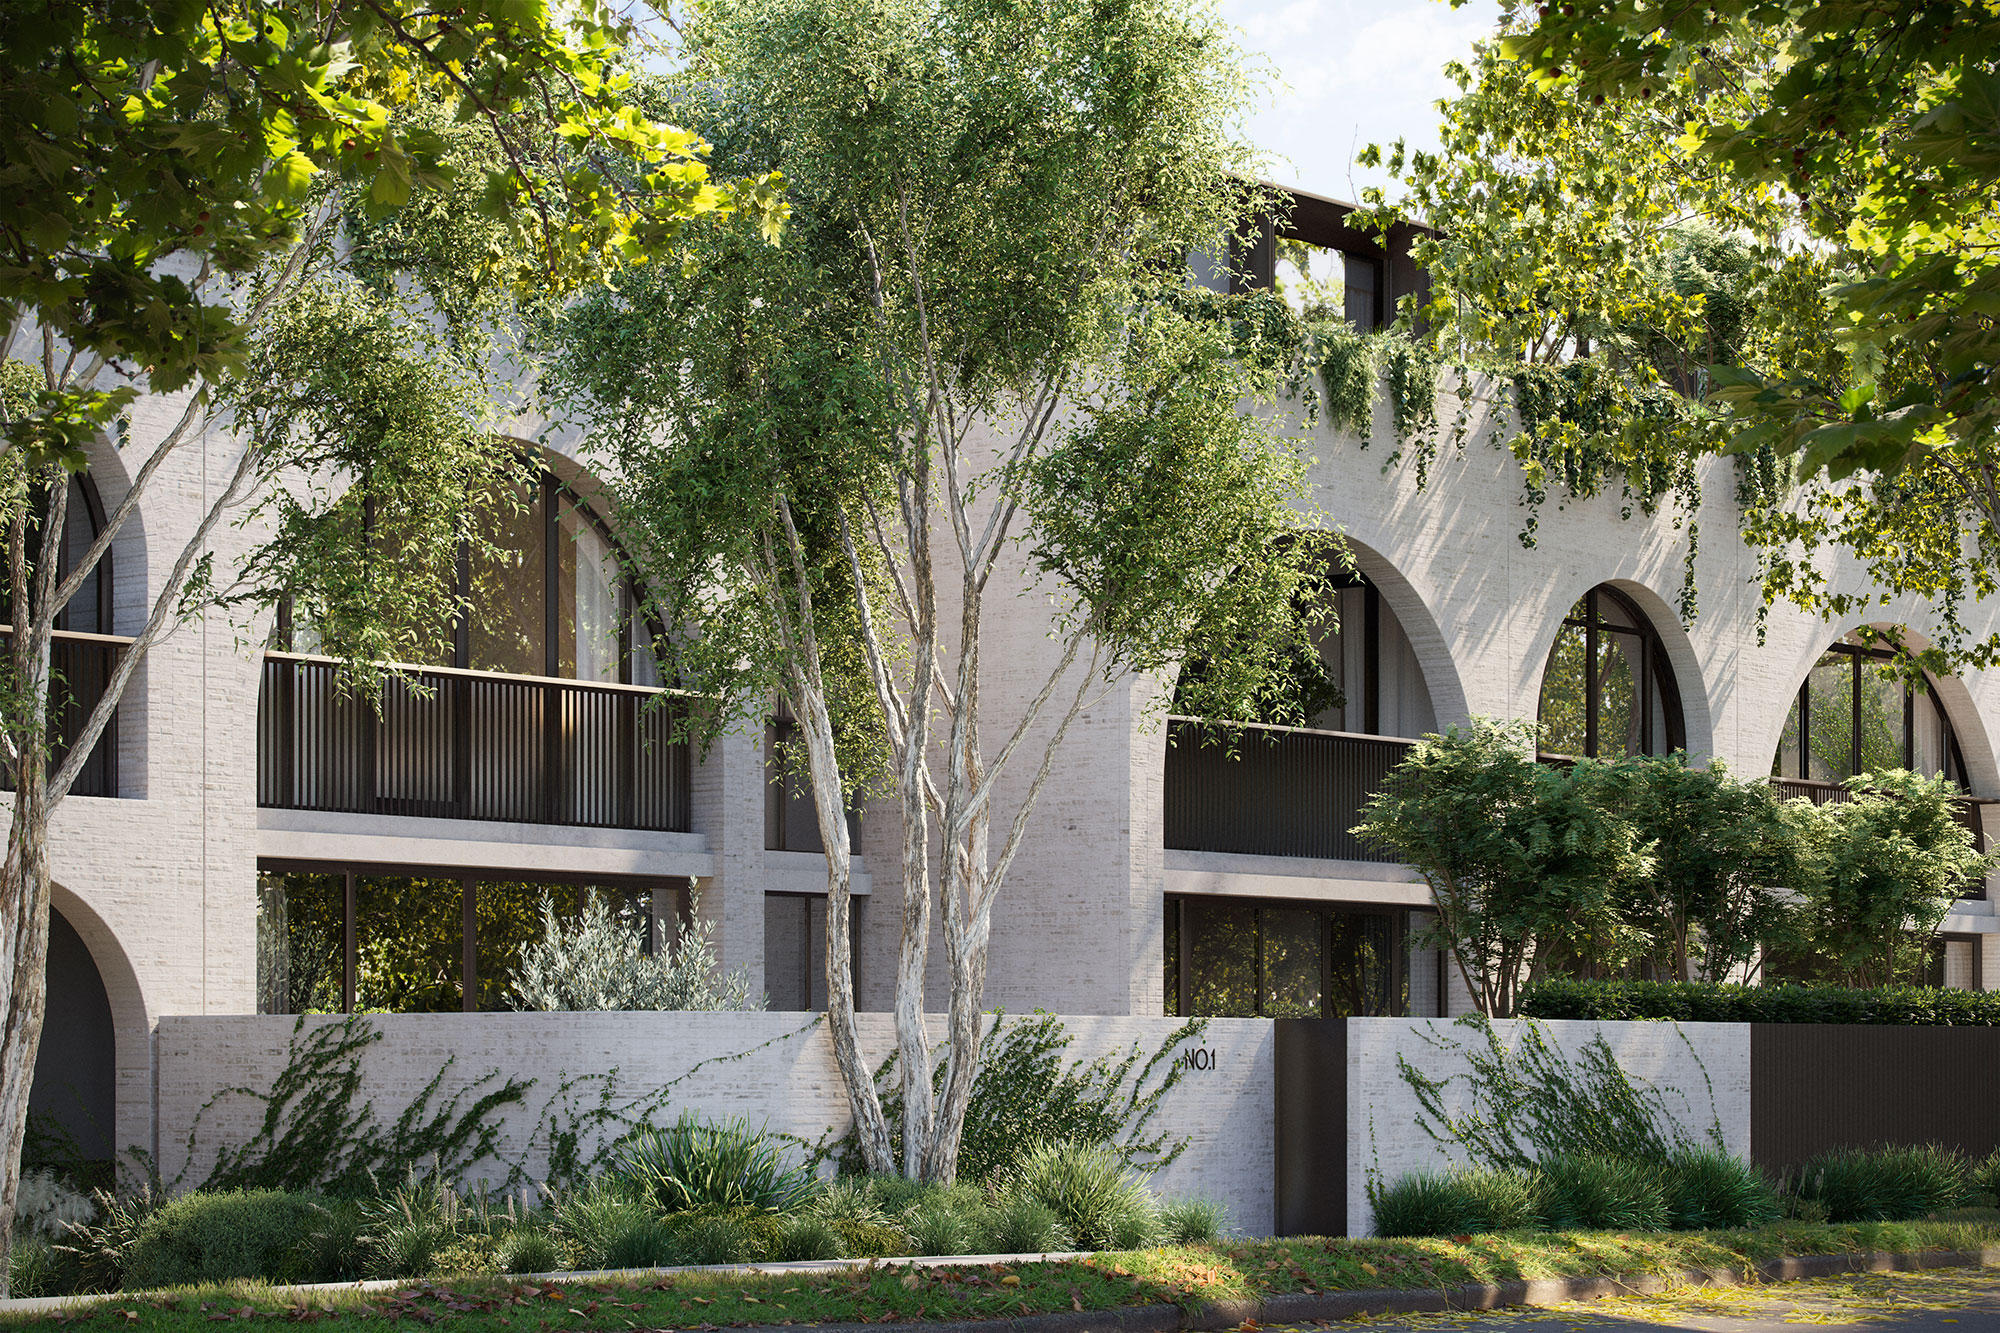 Willow embraces a tranquil, tree-lined street in vibrant Brighton